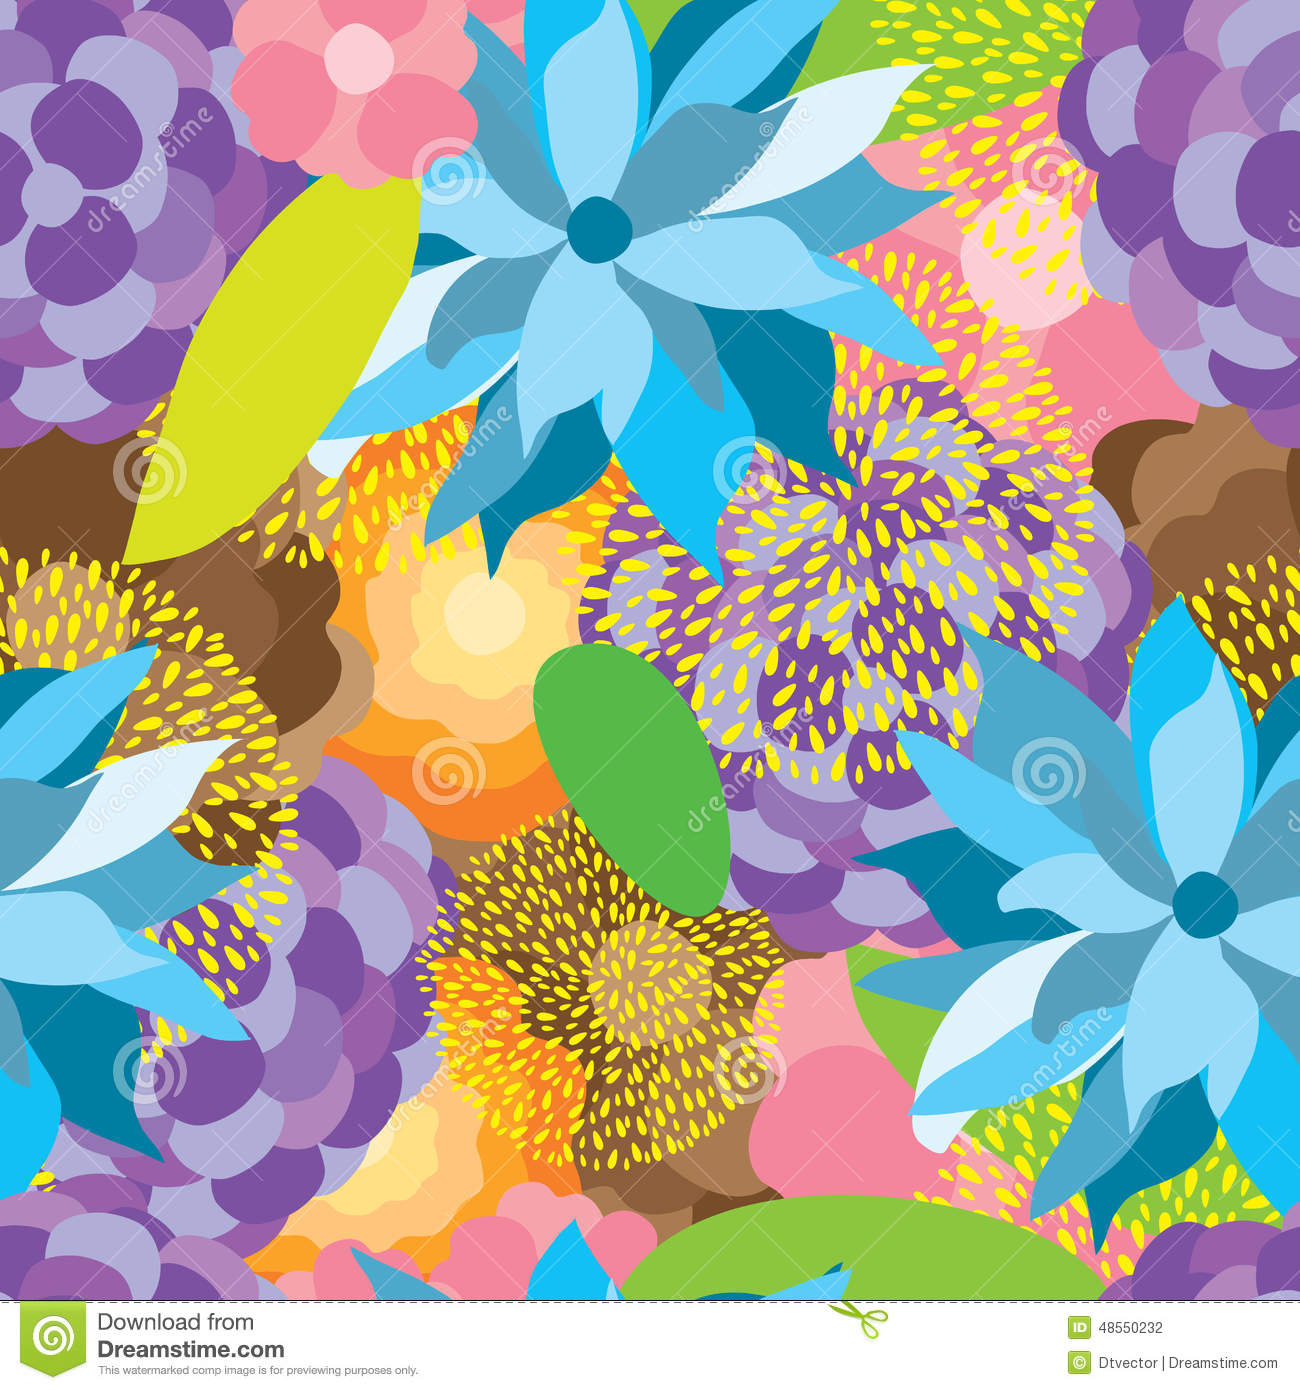 Lotus Flower Design Wall Paper : Flower fabric colorful seamless pattern stock vector